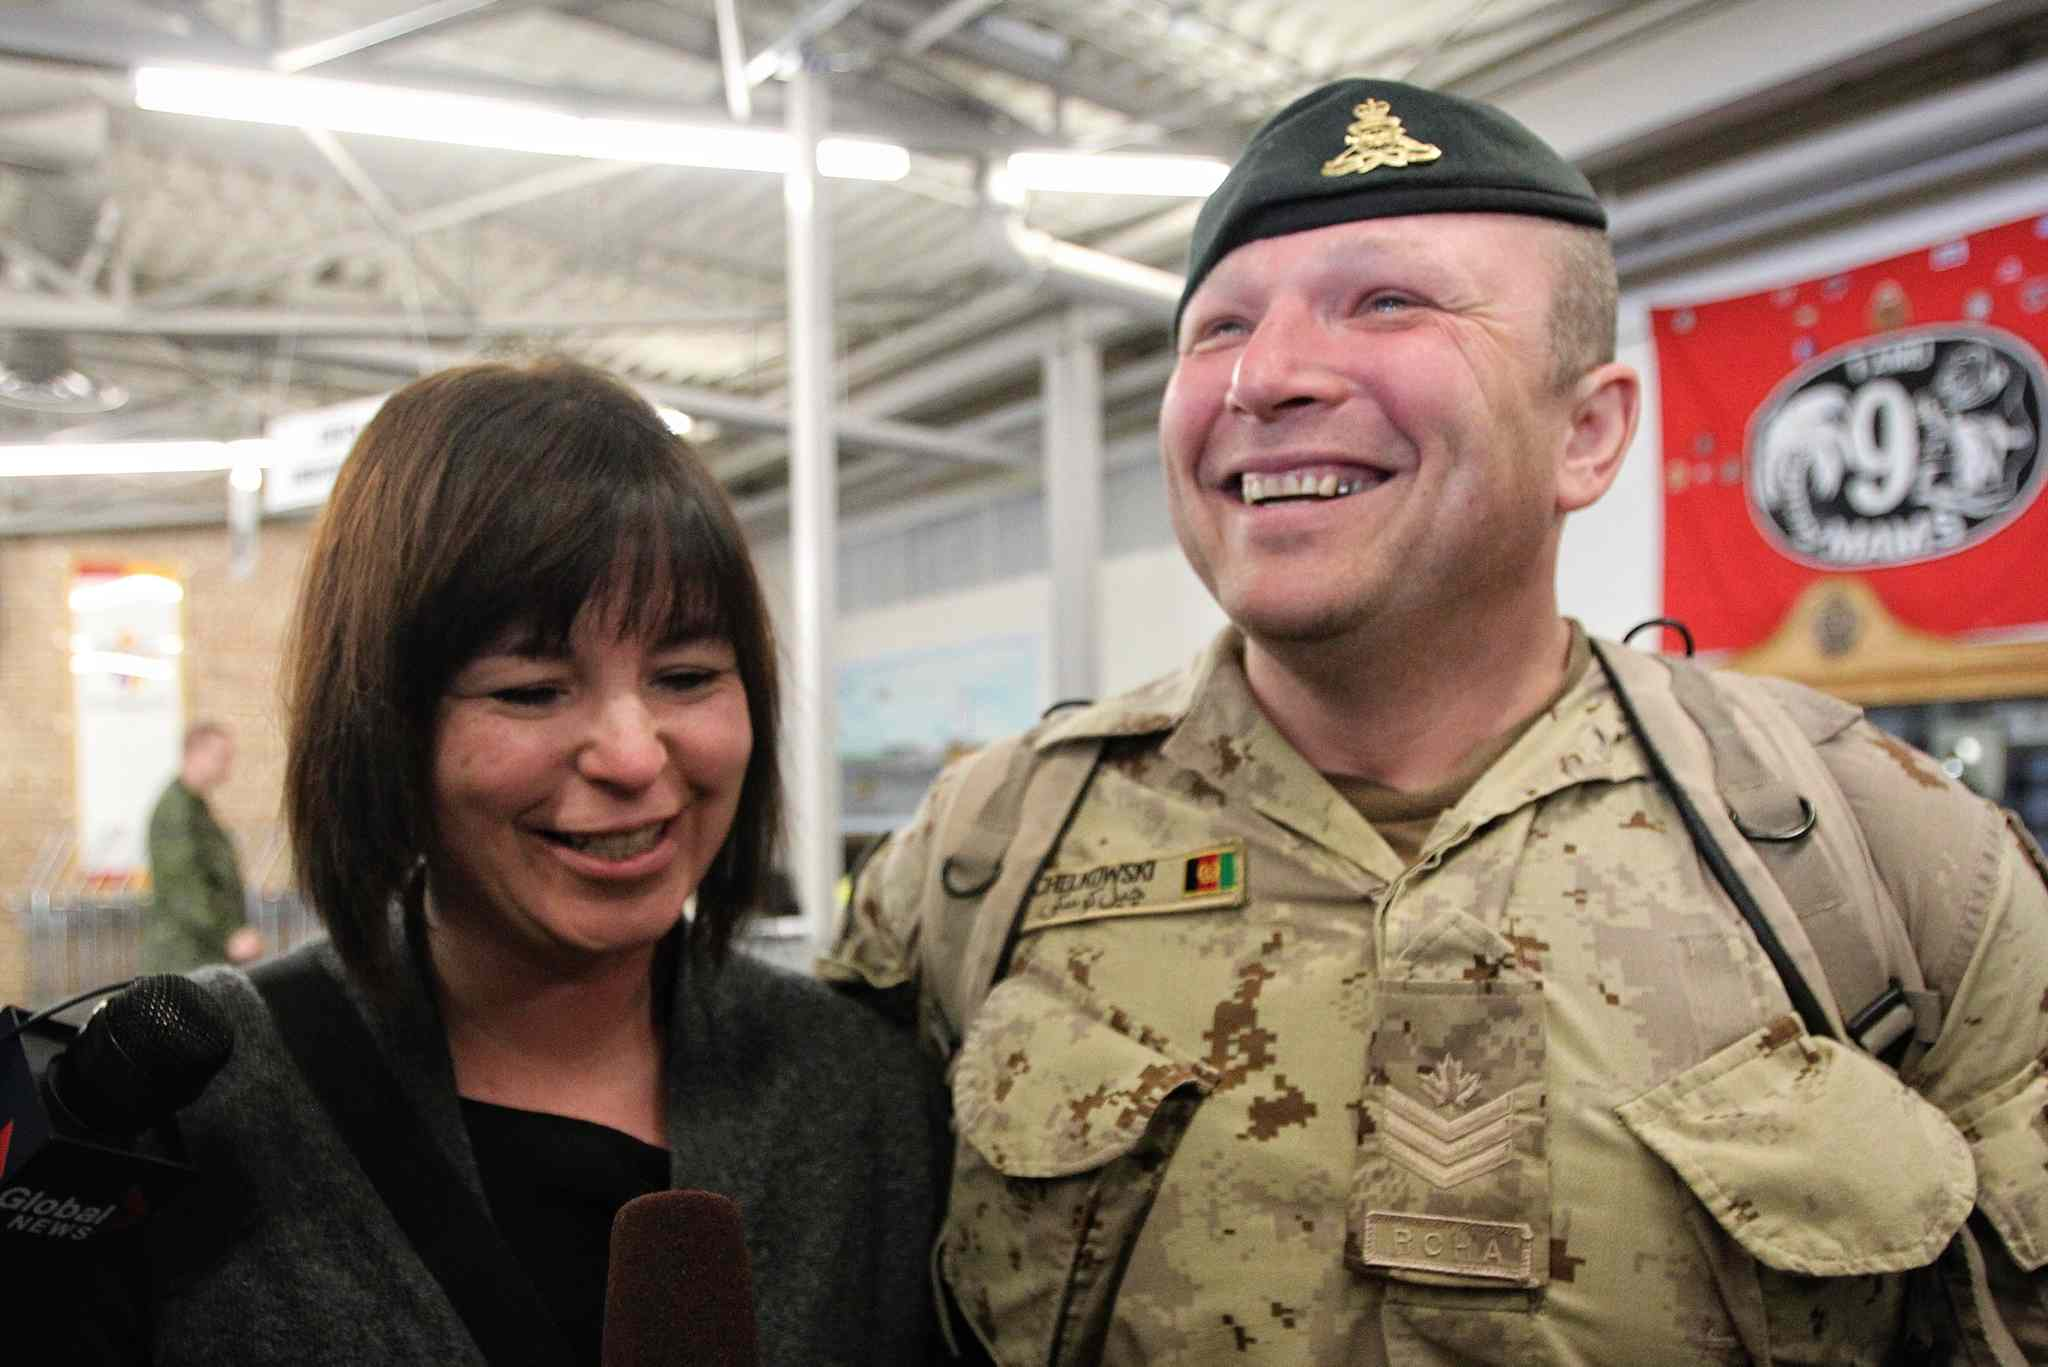 Sgt. David Chelkowski with the 1st RCHA is all smiles as he's greeted by his wife Jennifer on Monday after arriving in Winnipeg at 17 Wing from Afghanistan.